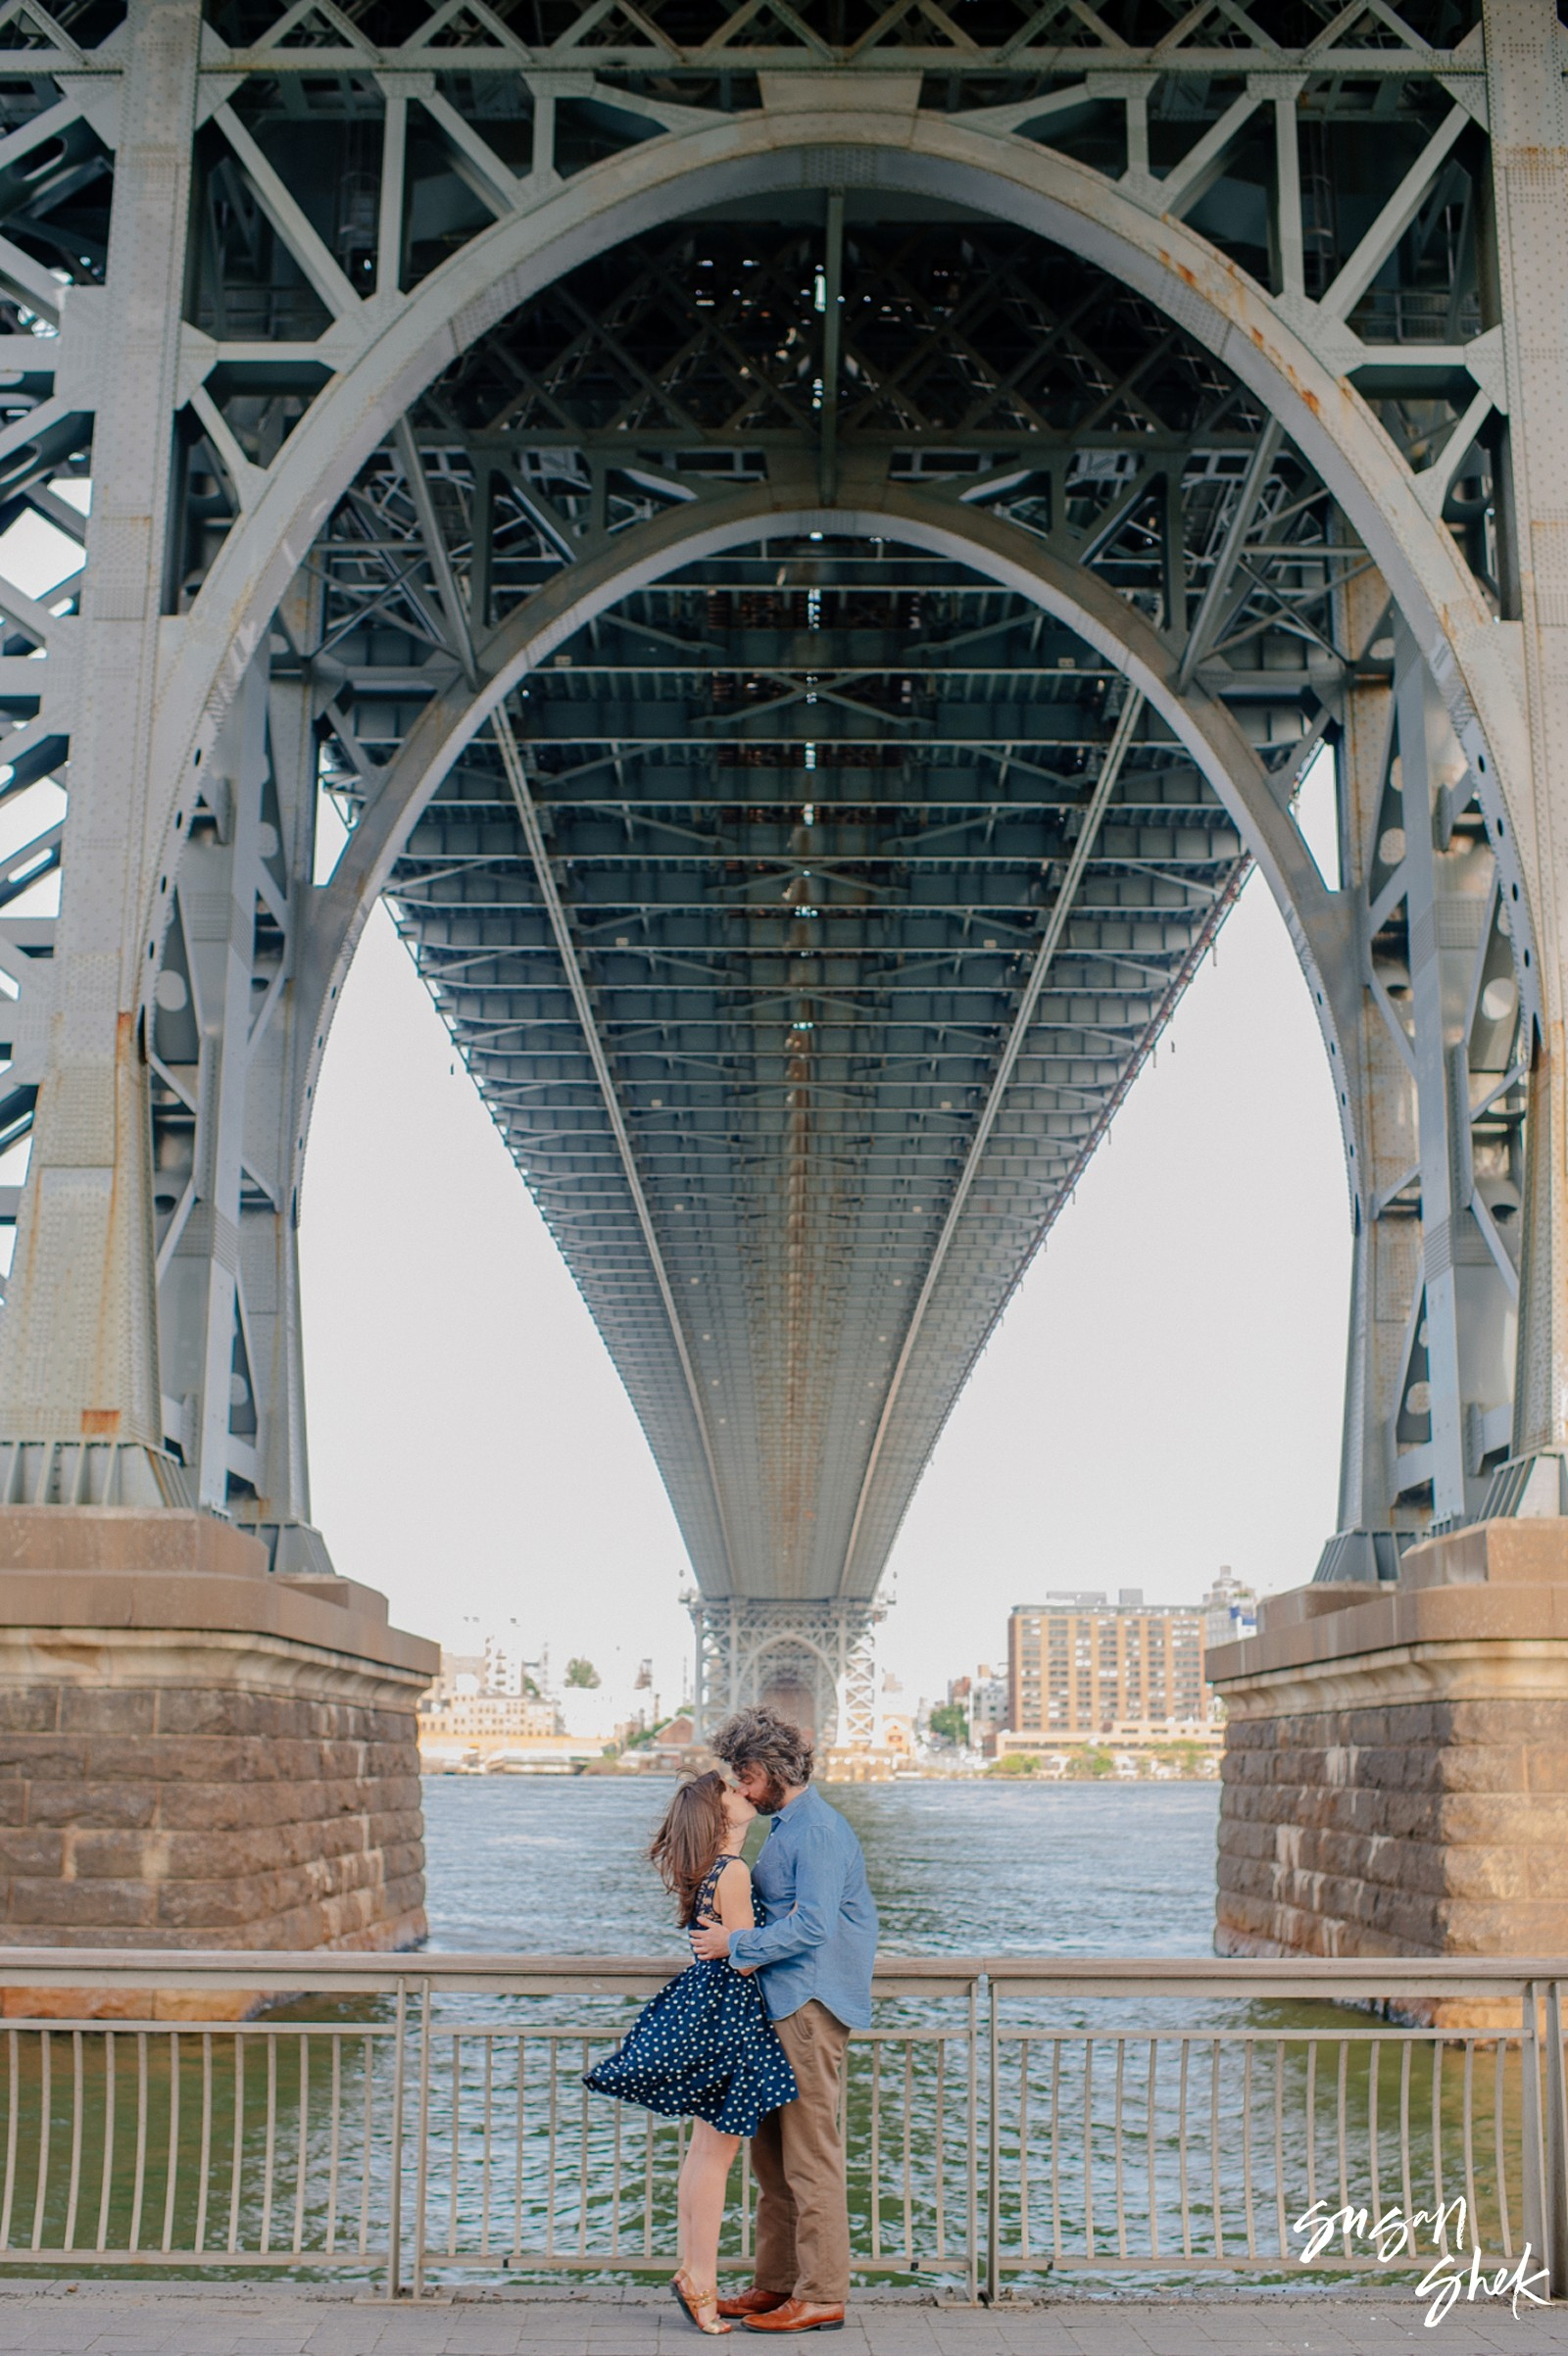 Williamsburg Bridge Engagement Session, Engagement Shoot, NYC Engagement Photographer, Engagement Session, Engagement Photography, Engagement Photographer, NYC Wedding Photographer